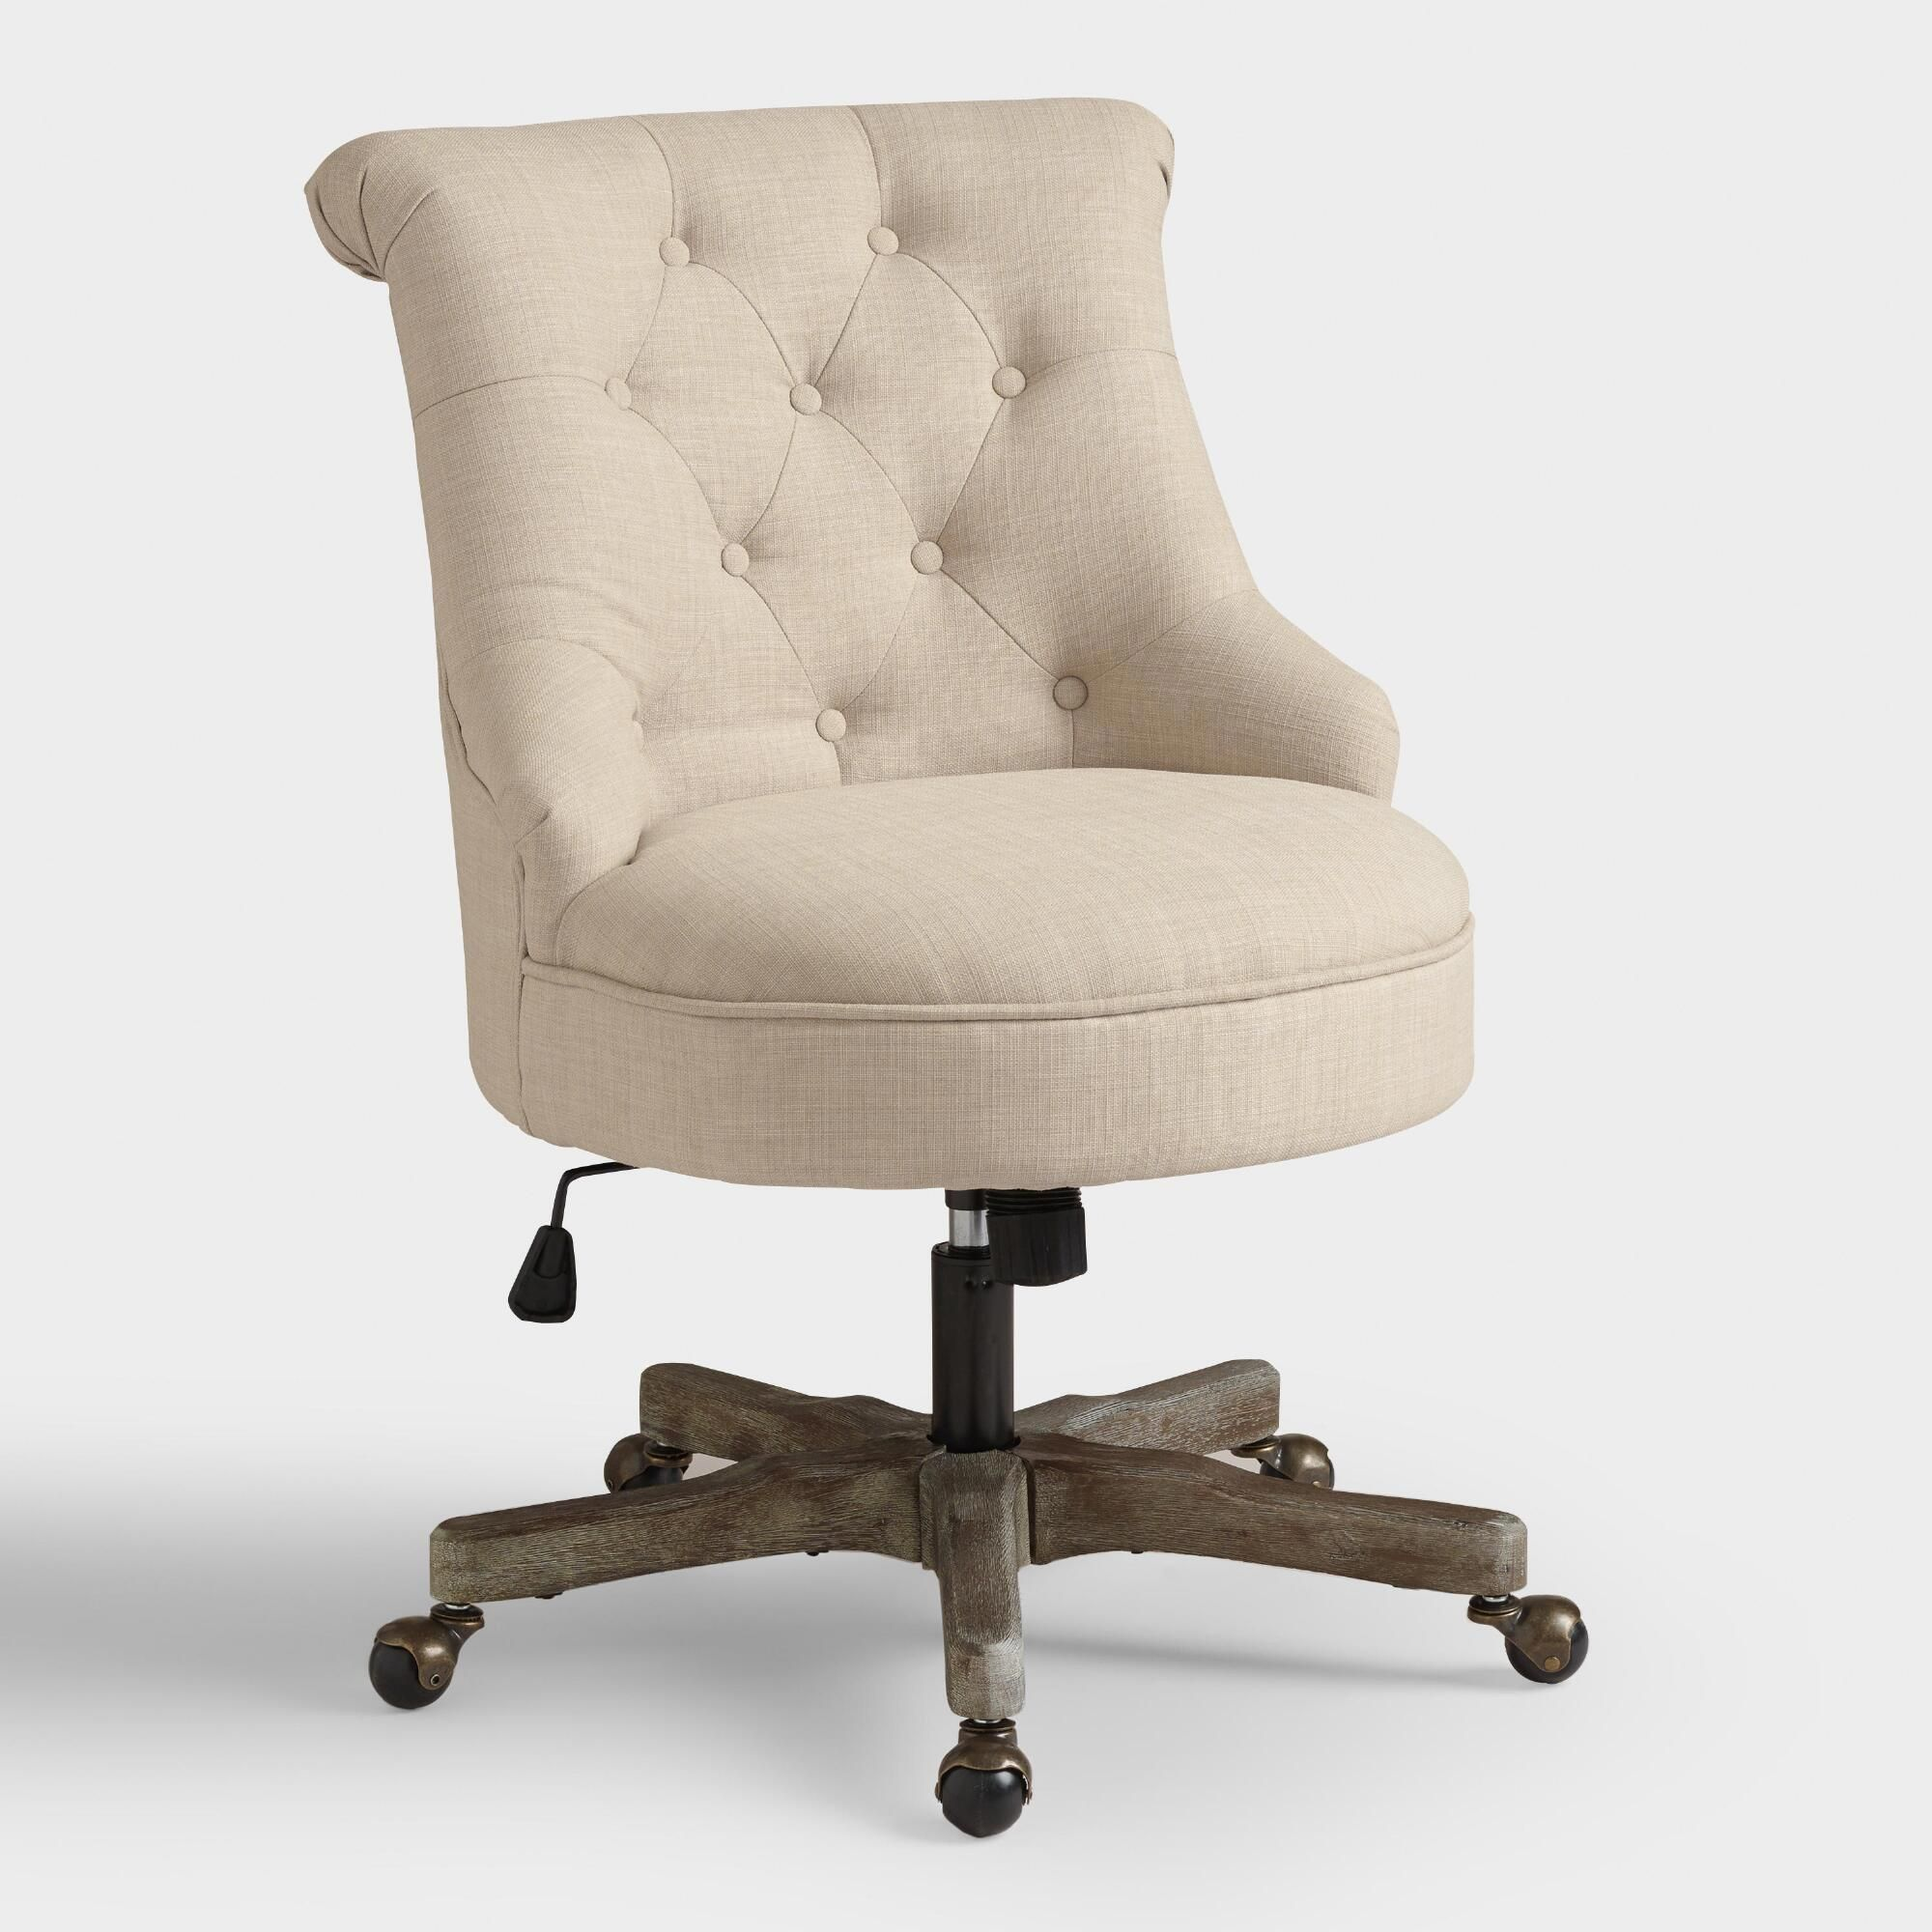 Warm Ivory Elsie Upholstered Office Chair White by World